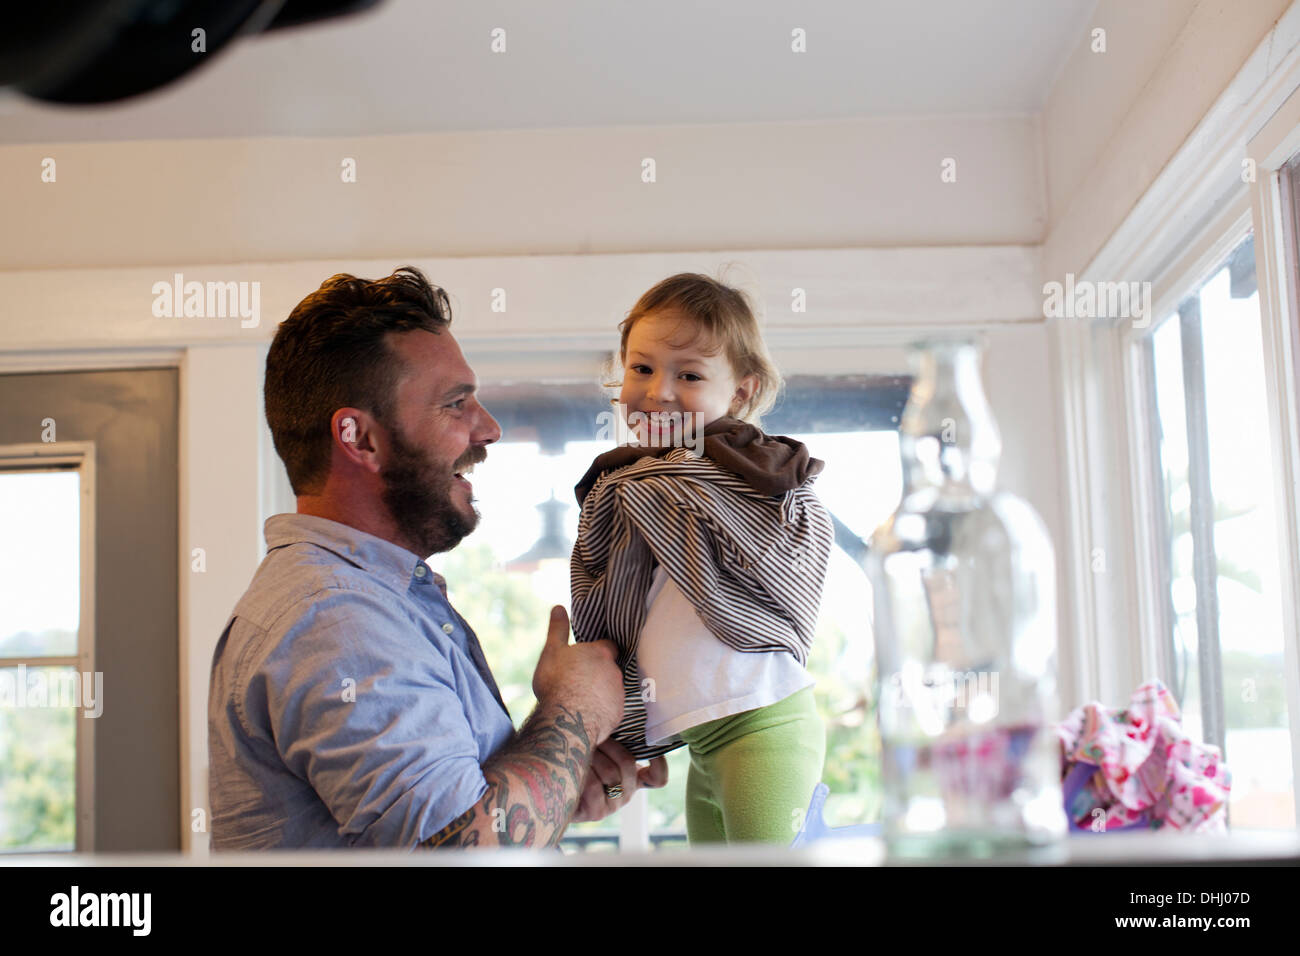 Father getting daughter dressed - Stock Image